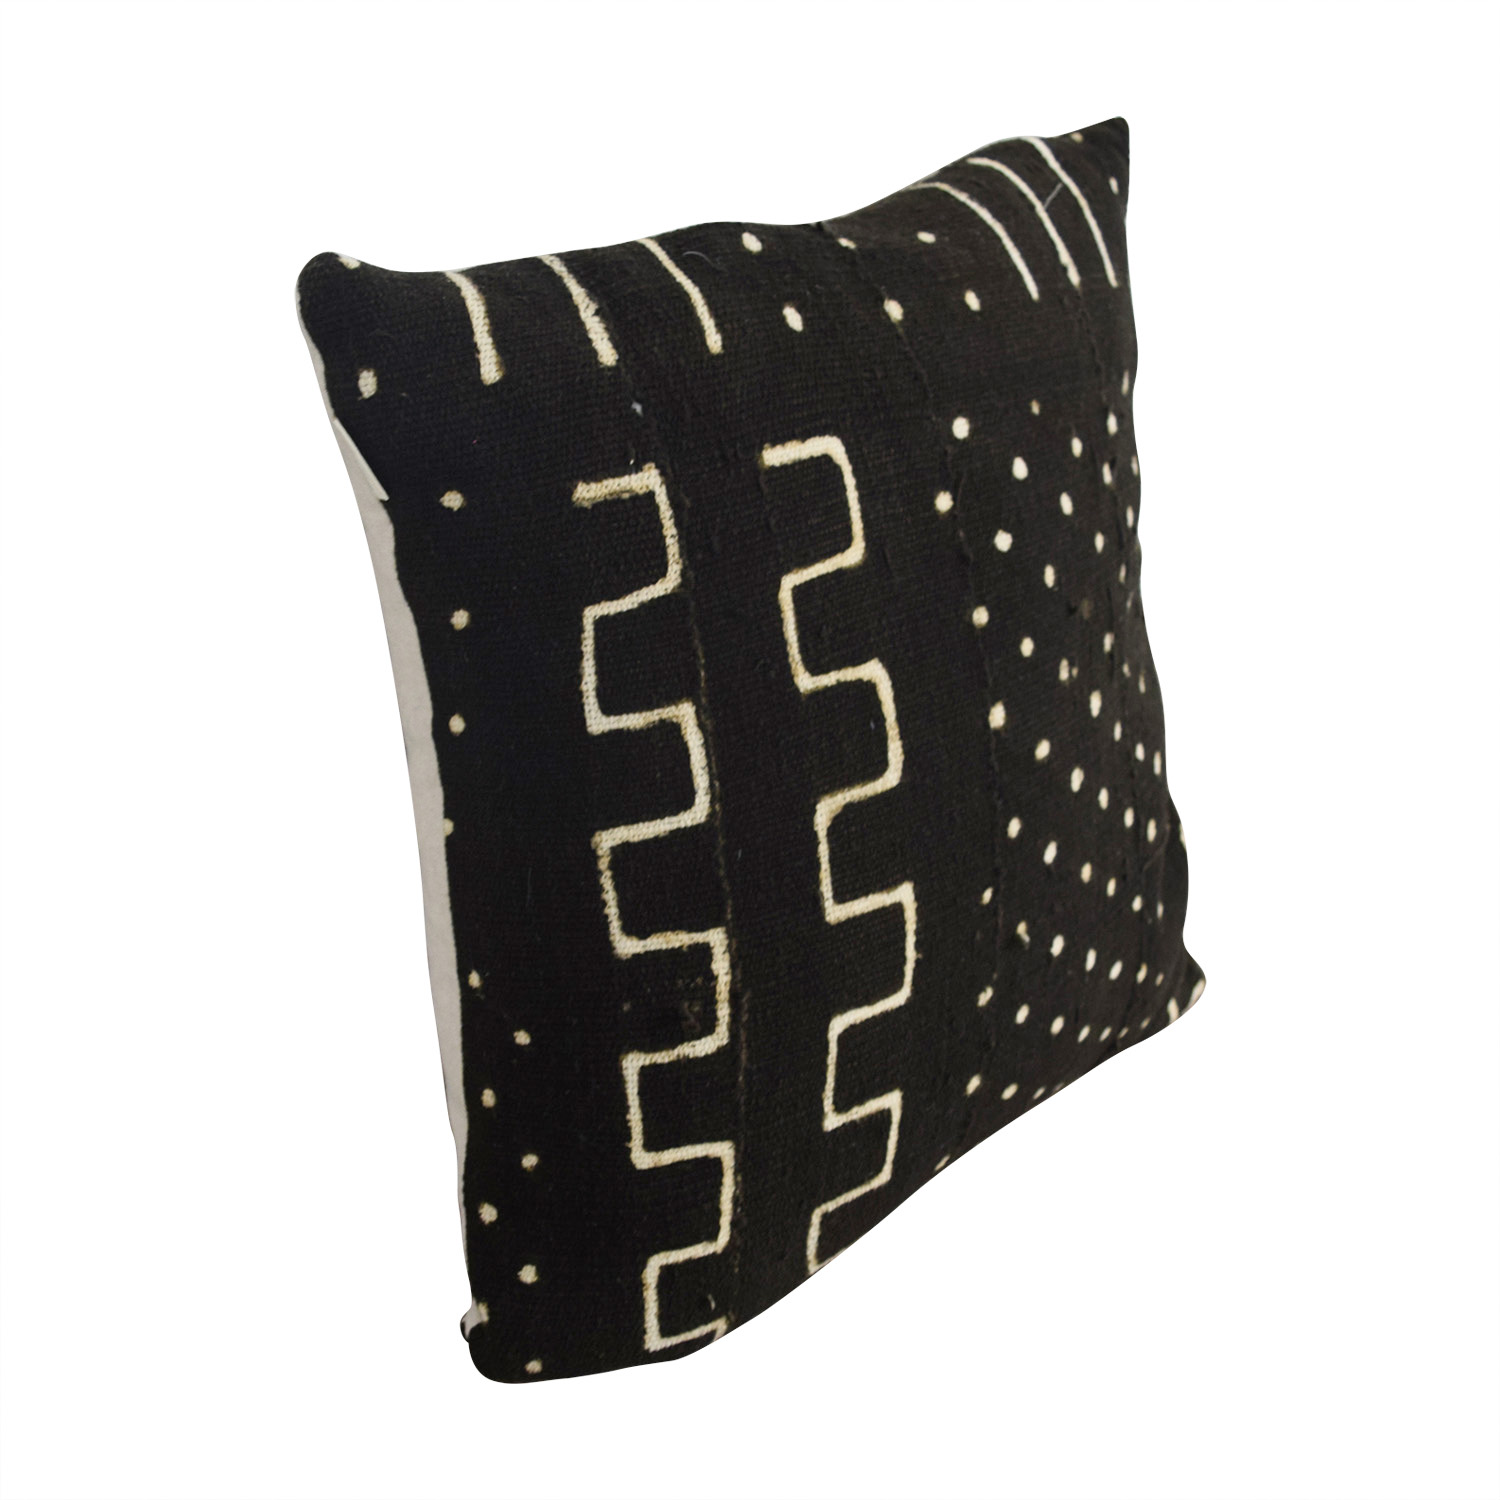 Etsy Etsy African Black and Beige Mudcloth Toss Pillow second hand